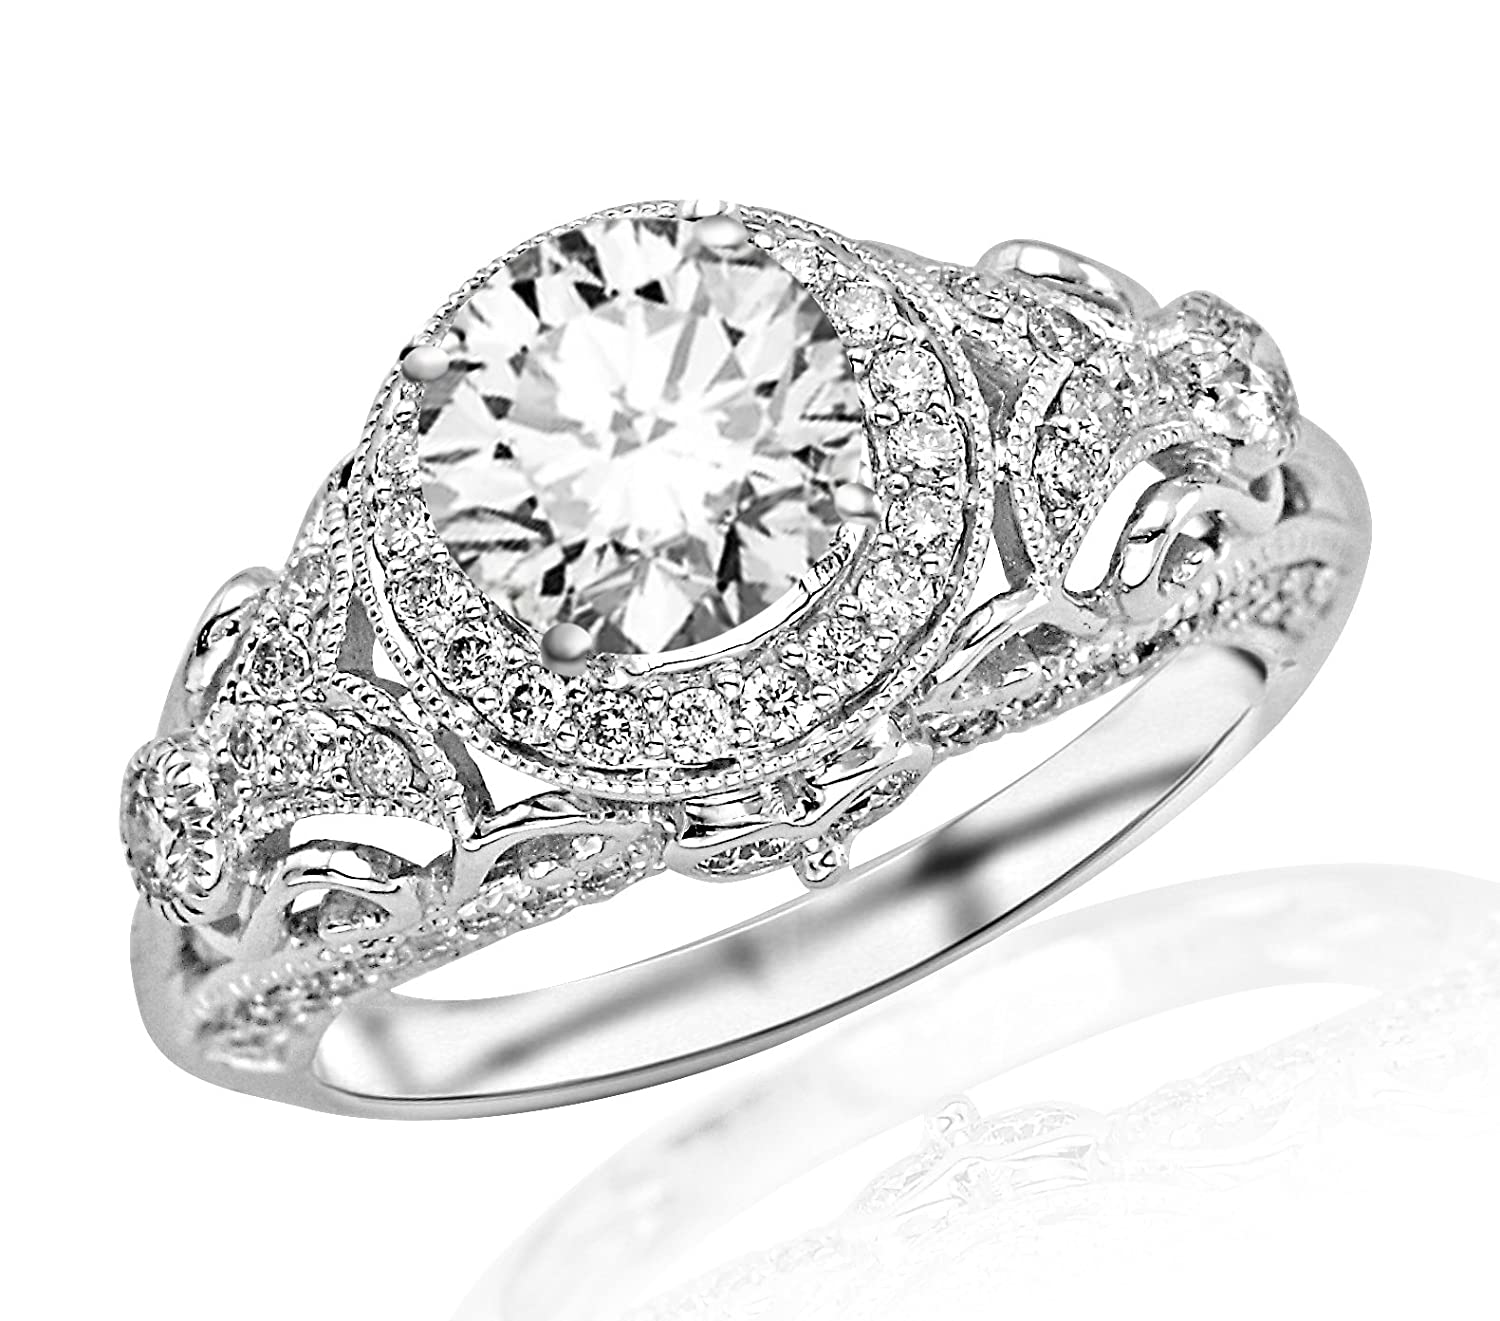 engagement bands com wedding vintage diamond sprigwp rings impactful style promise